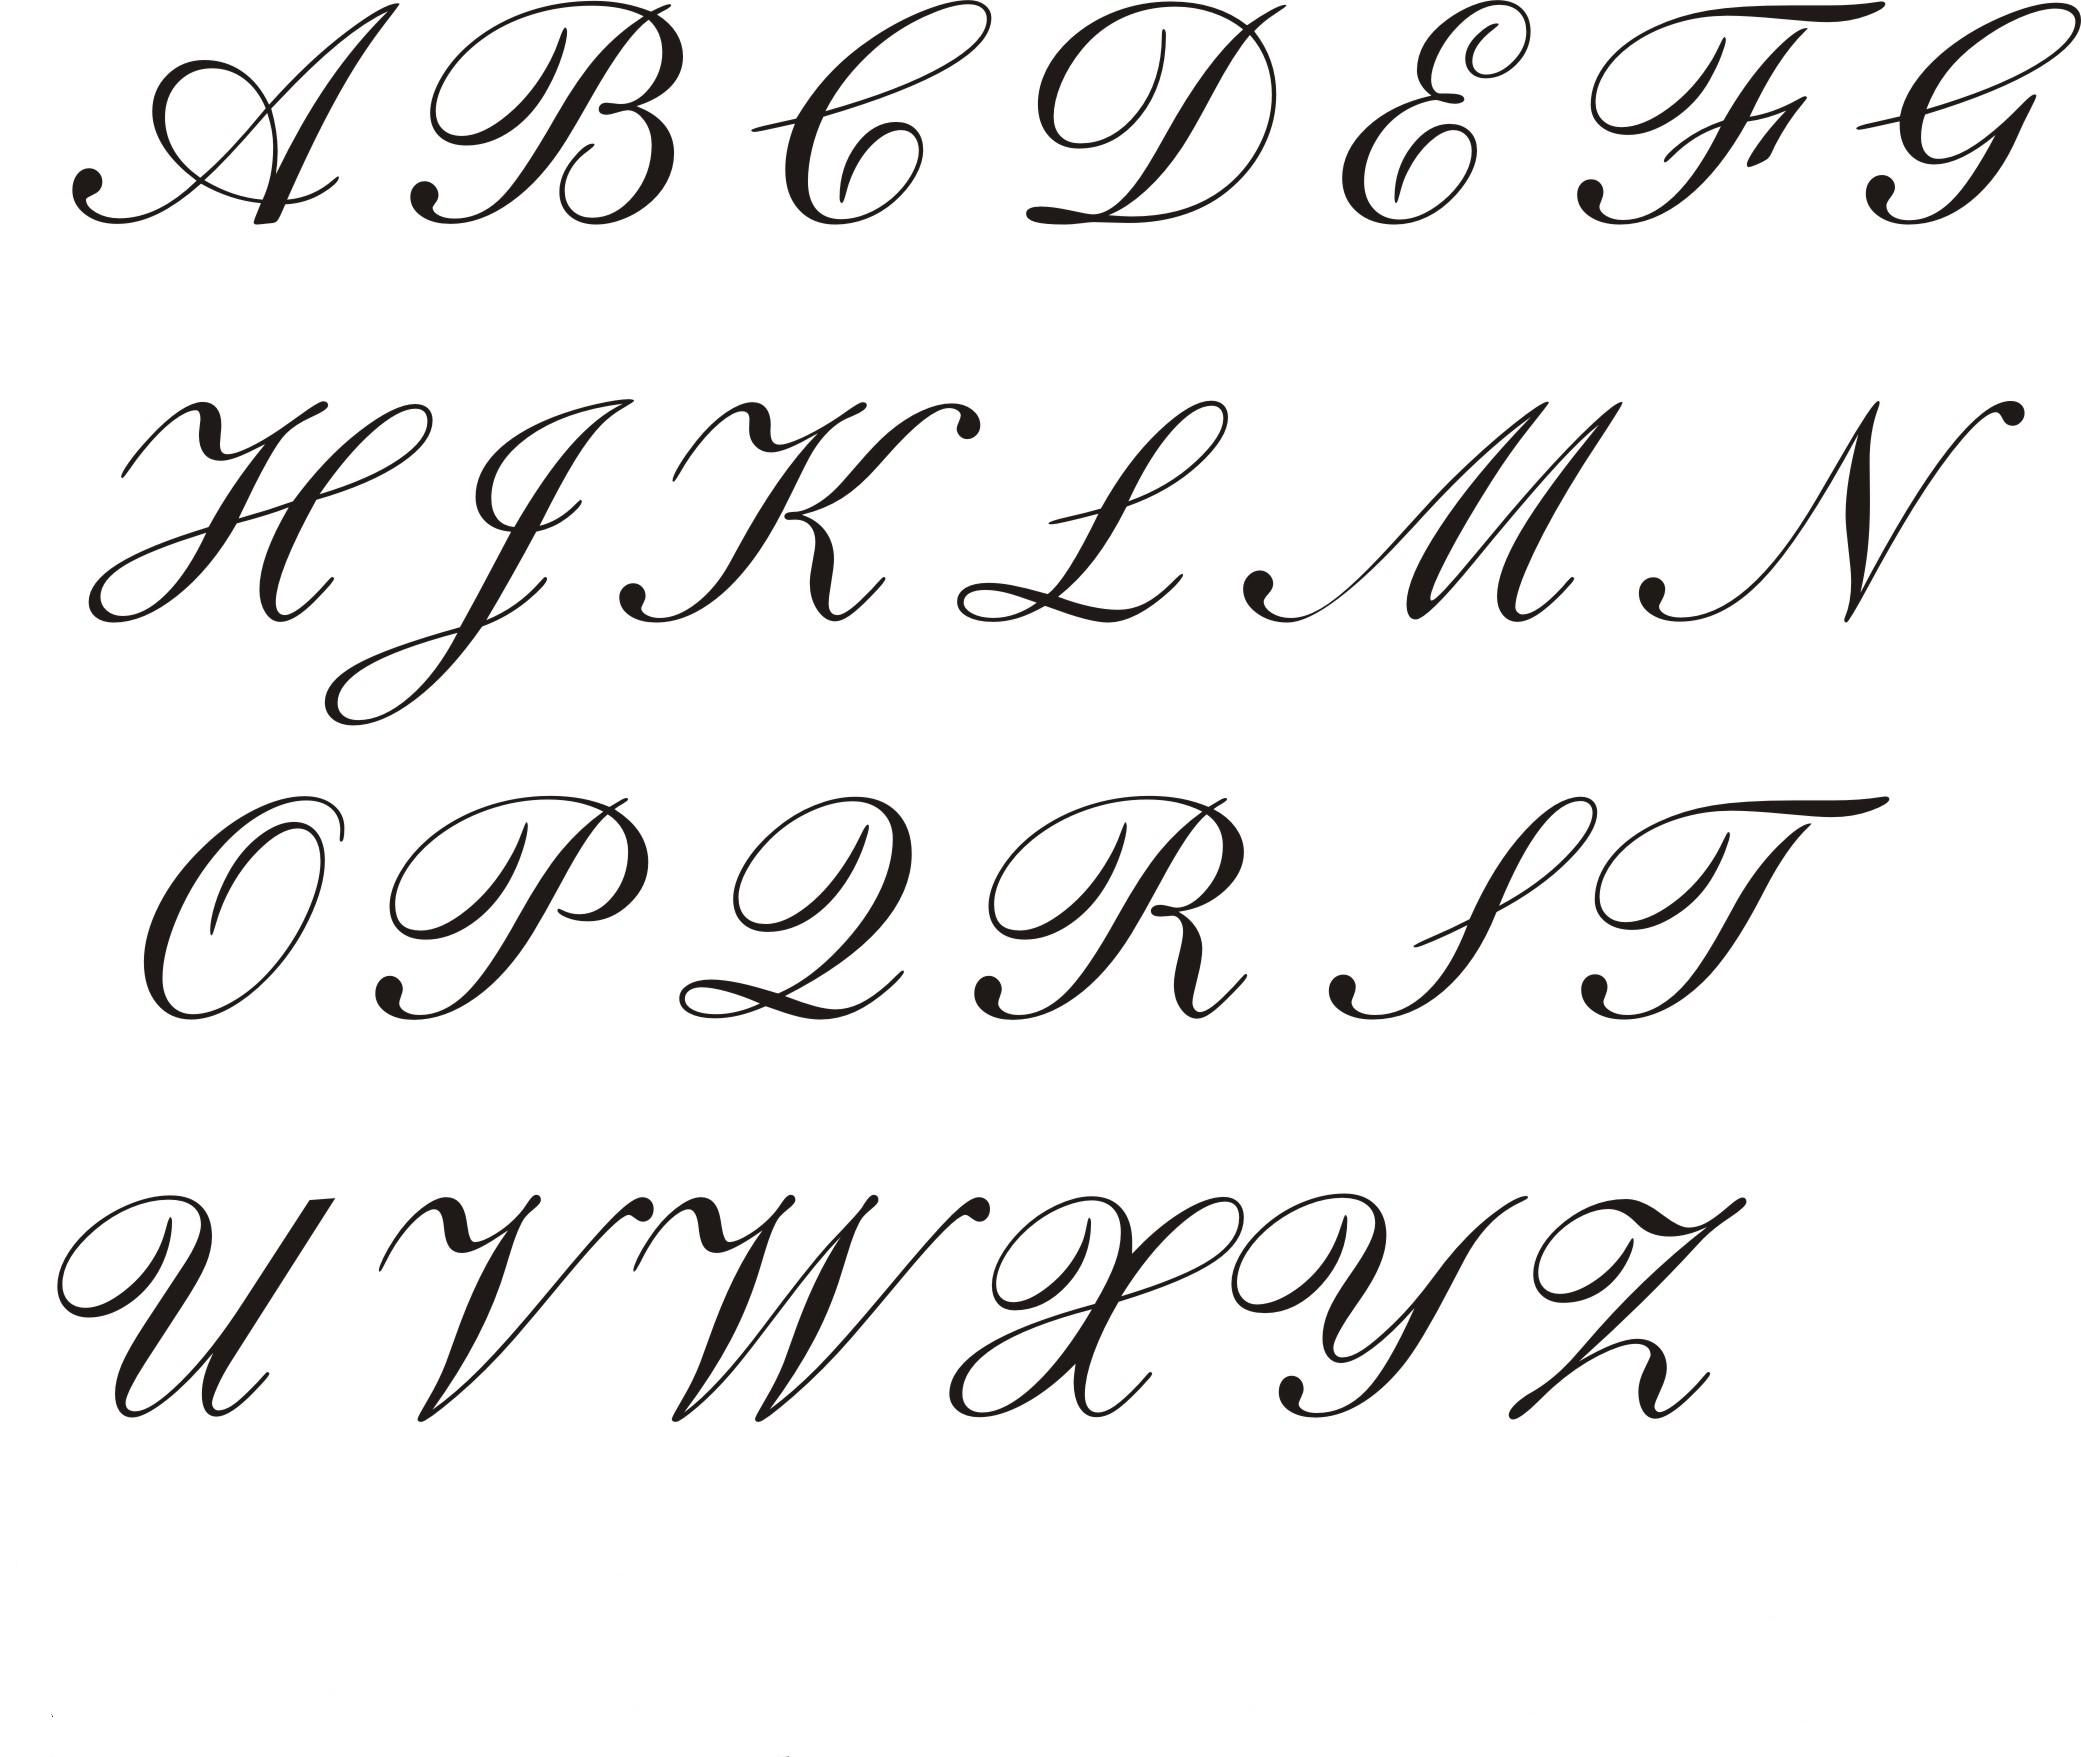 Calligraphy Fonts Victorian Victorian Alphabet Google Search Just My Type Escolares